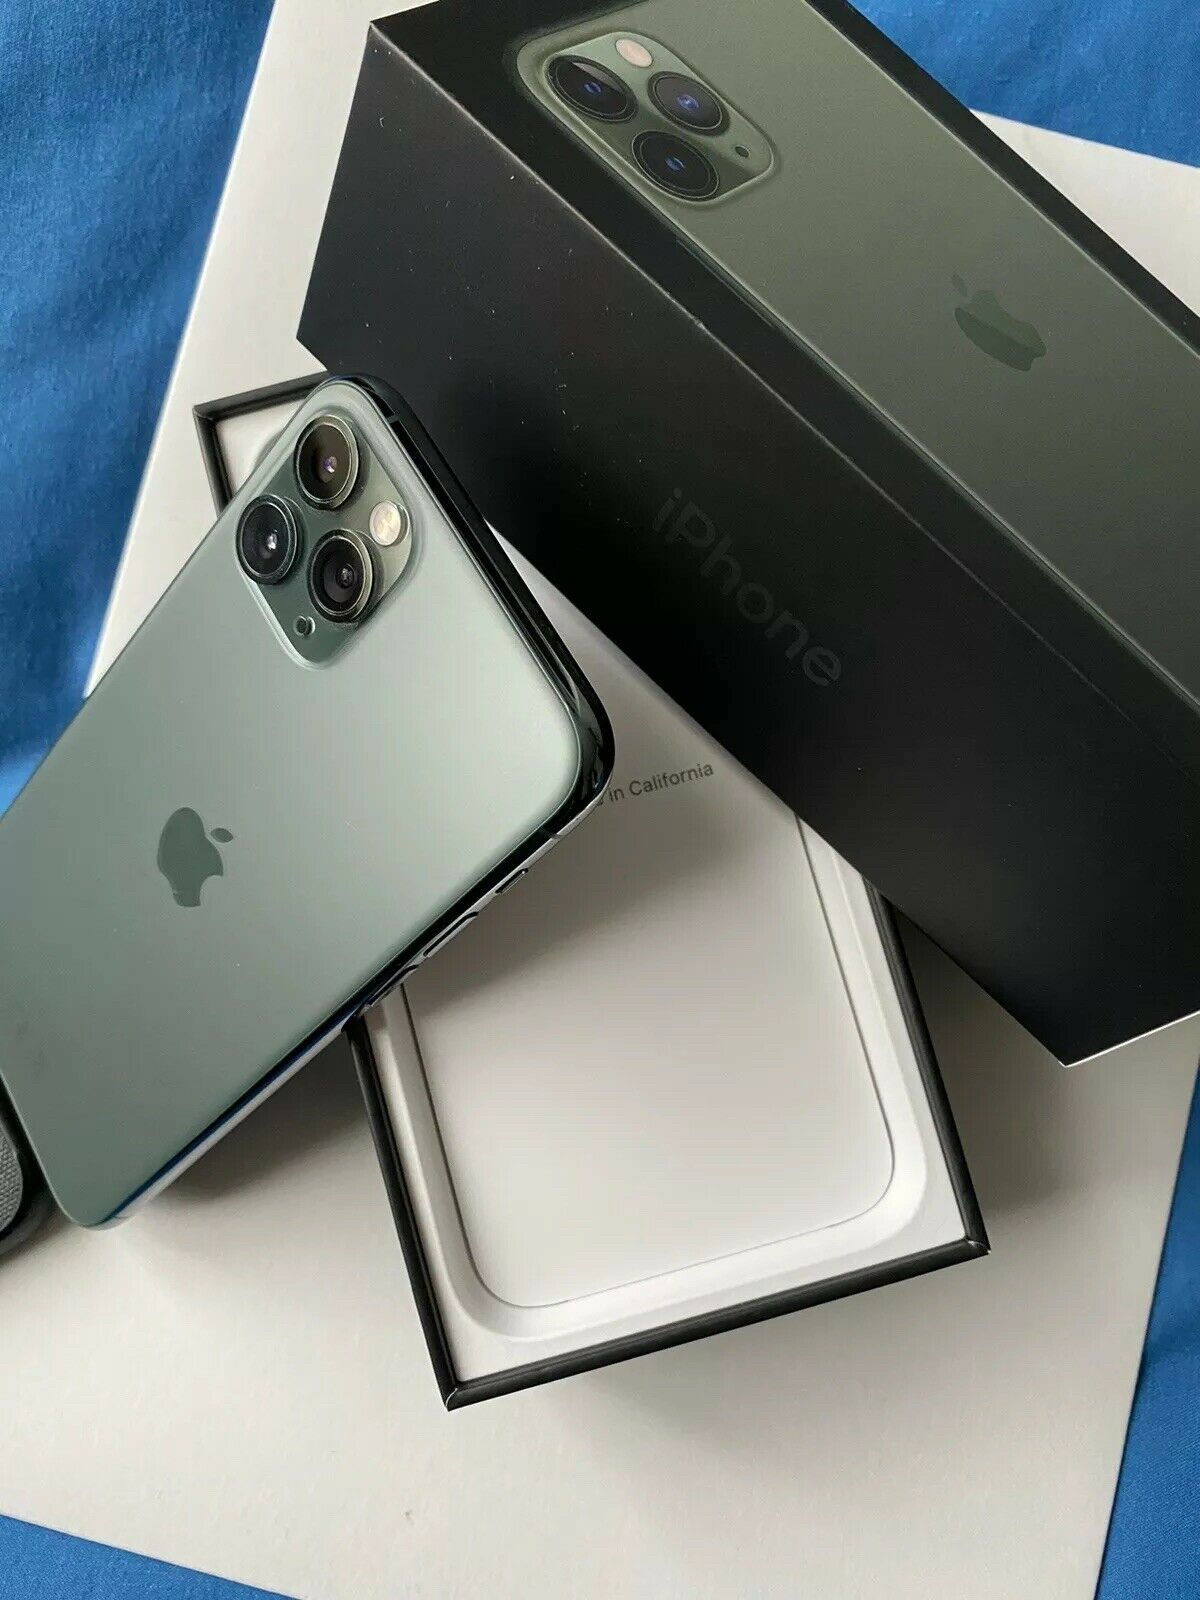 www.bulksalesltd.com WhatsApp +447451212932 Apple iPhone 11 Pro 64gb EUR500 iPhone 11 Pro Max 64gb EUR530